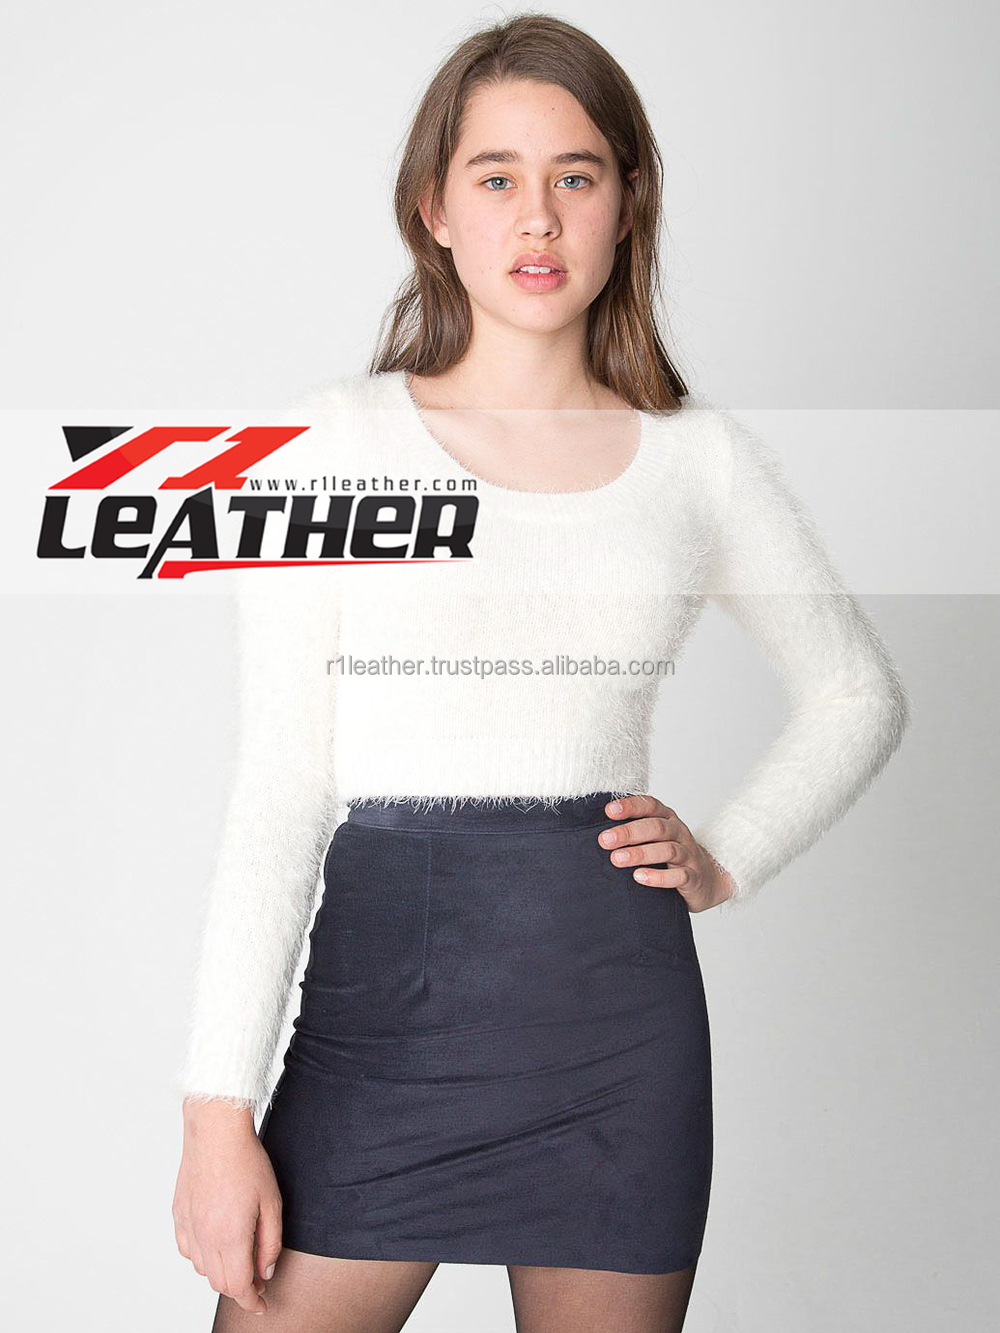 mature woman leather skirt, mature woman leather skirt suppliers and